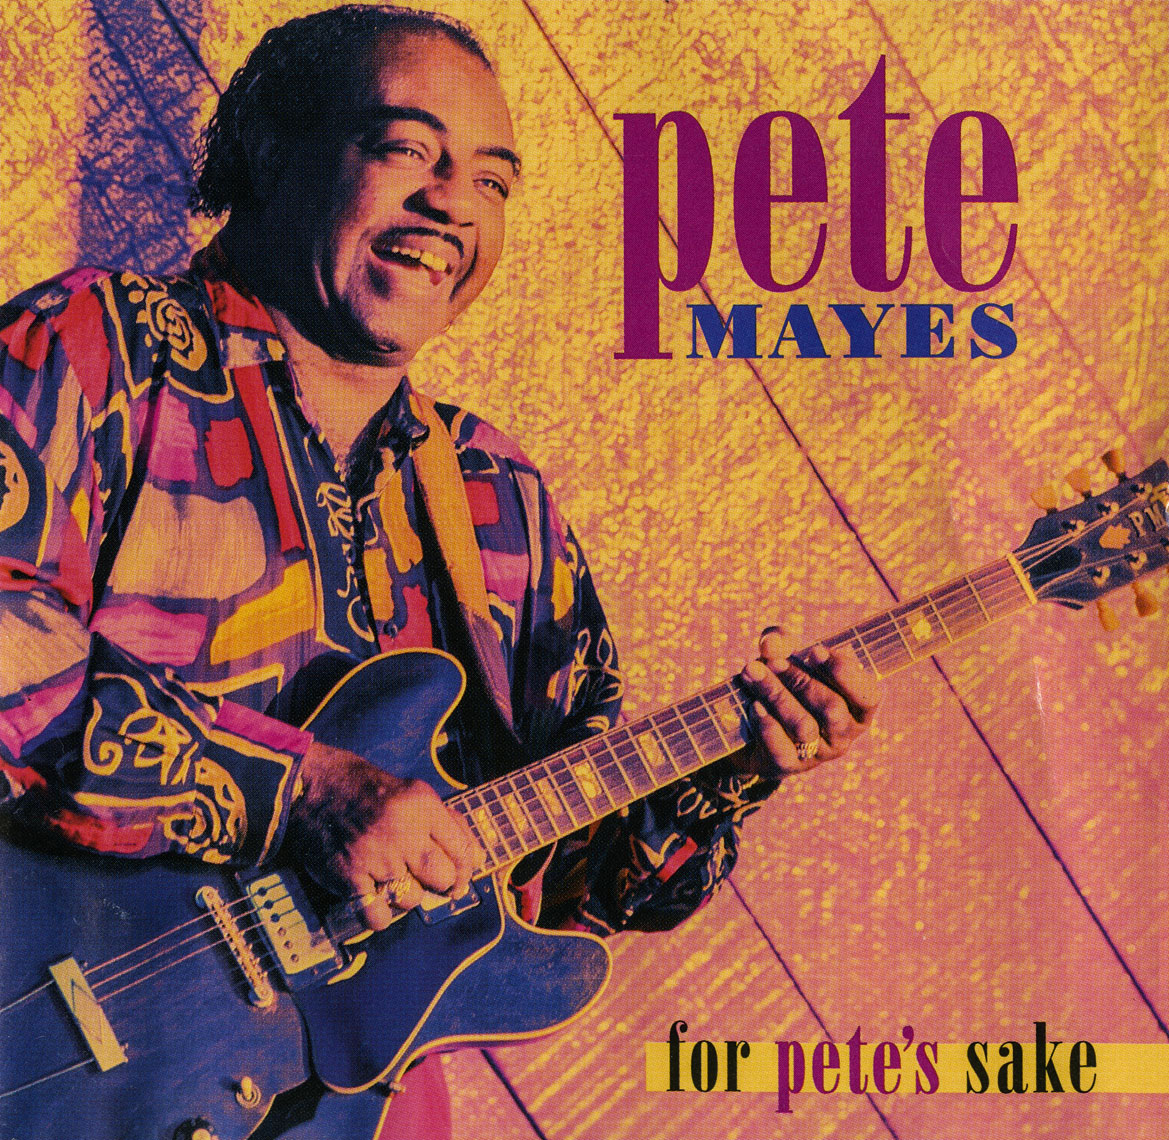 Pete-Mayes001-Edit